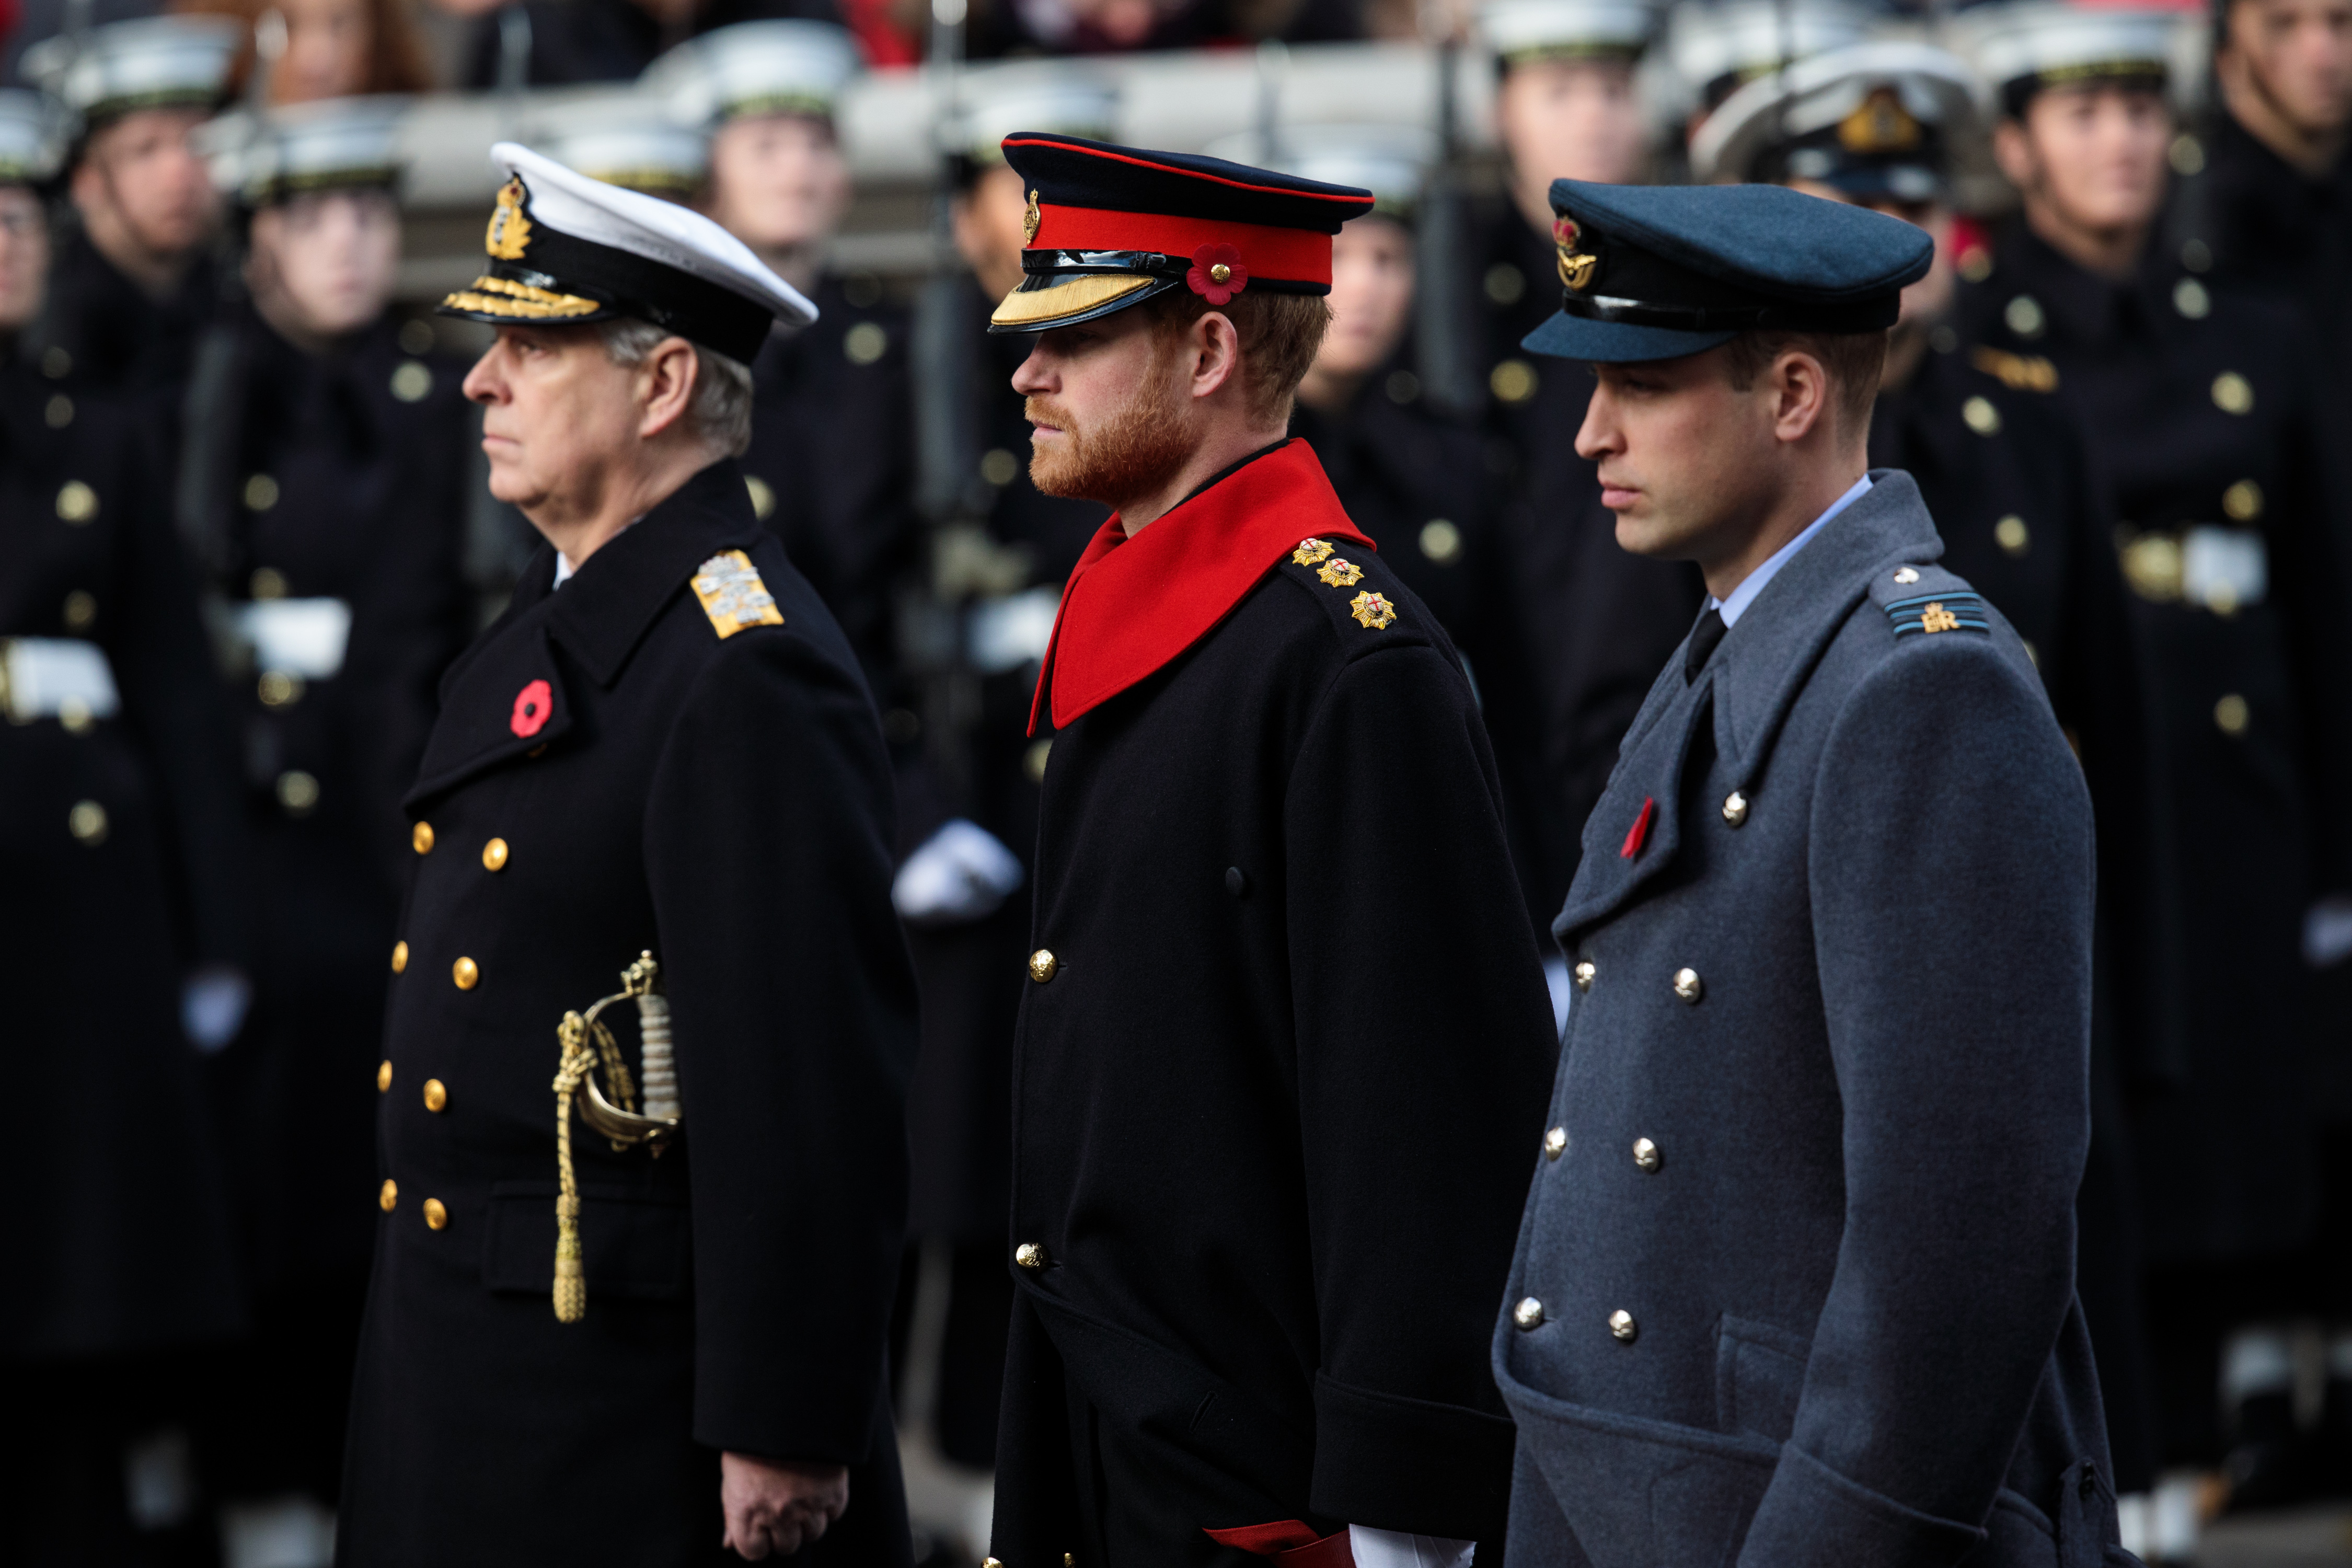 Prince Andrew, Duke of York, Prince Harry and Prince William, Duke of Cambridge attend the annual Remembrance Sunday memorial on November 12, 2017 in London, England.